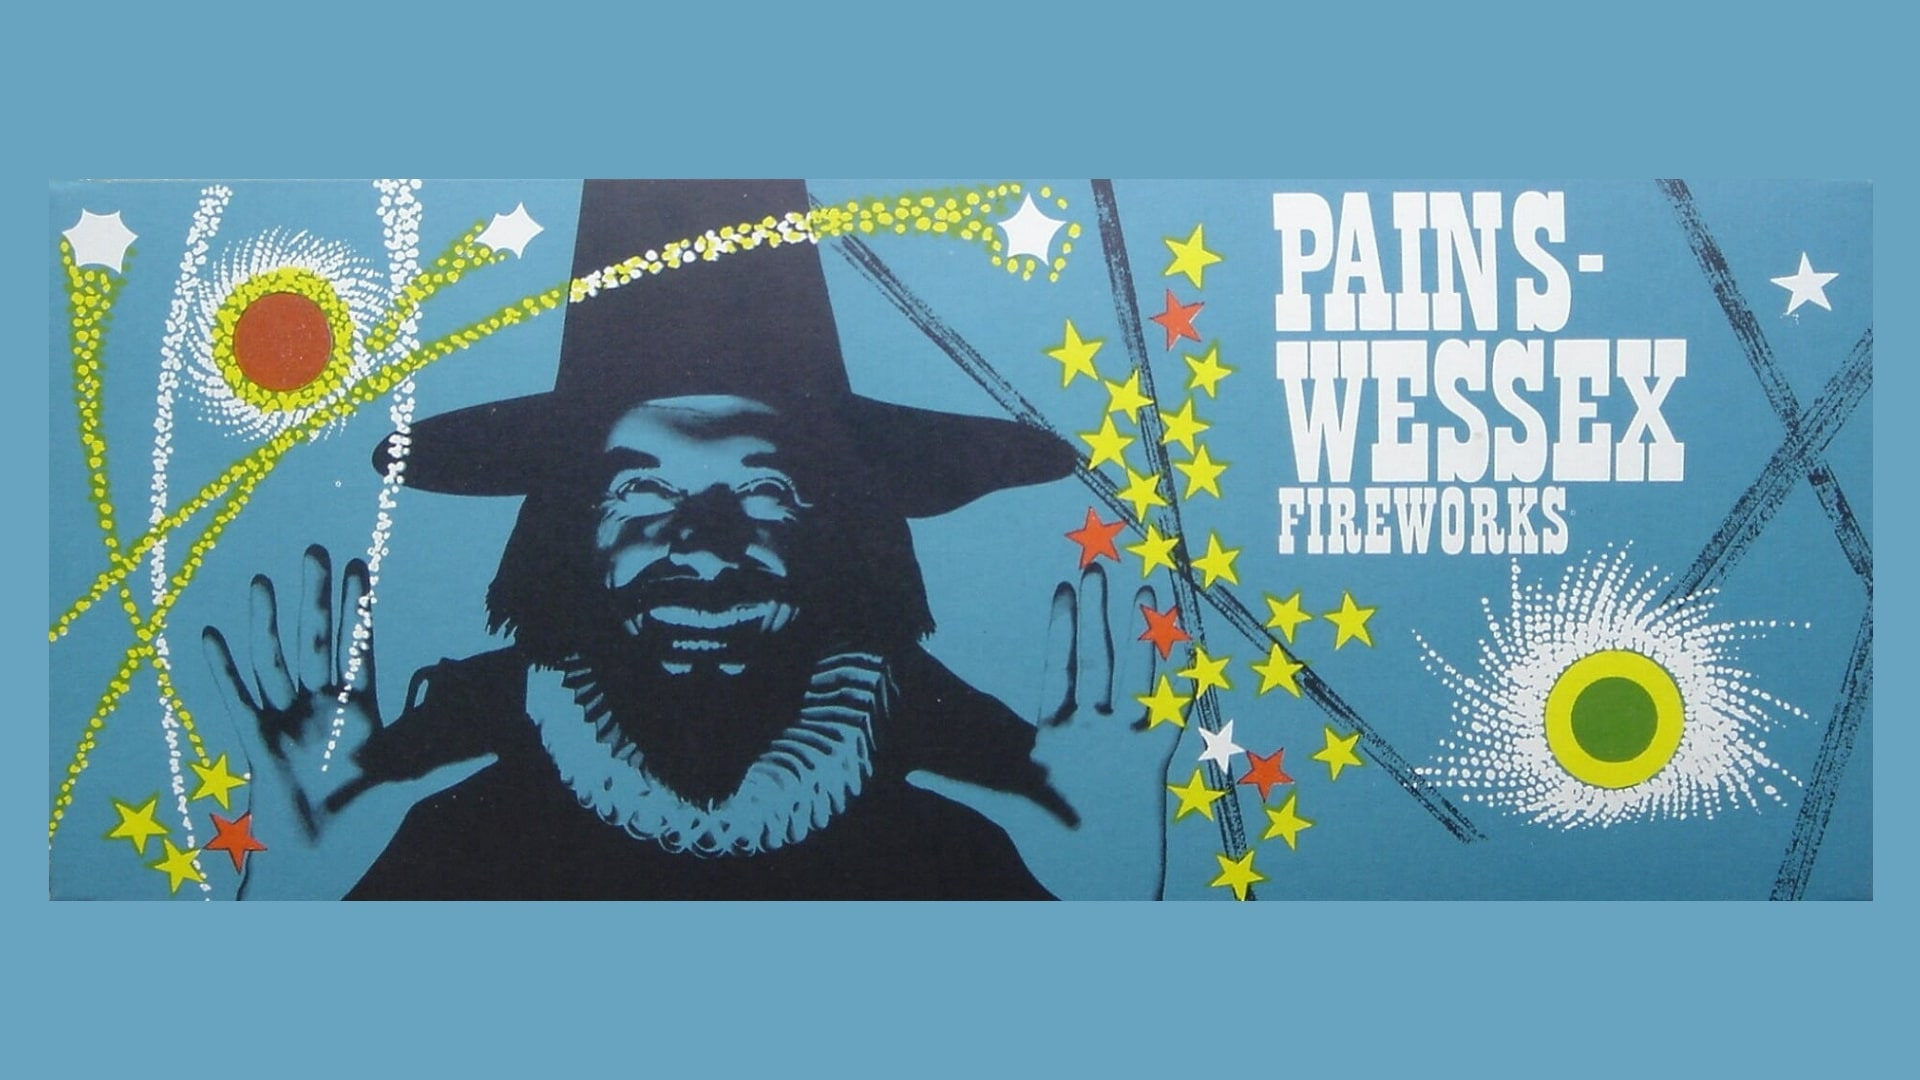 Pains Wessex Fireworks selection box design